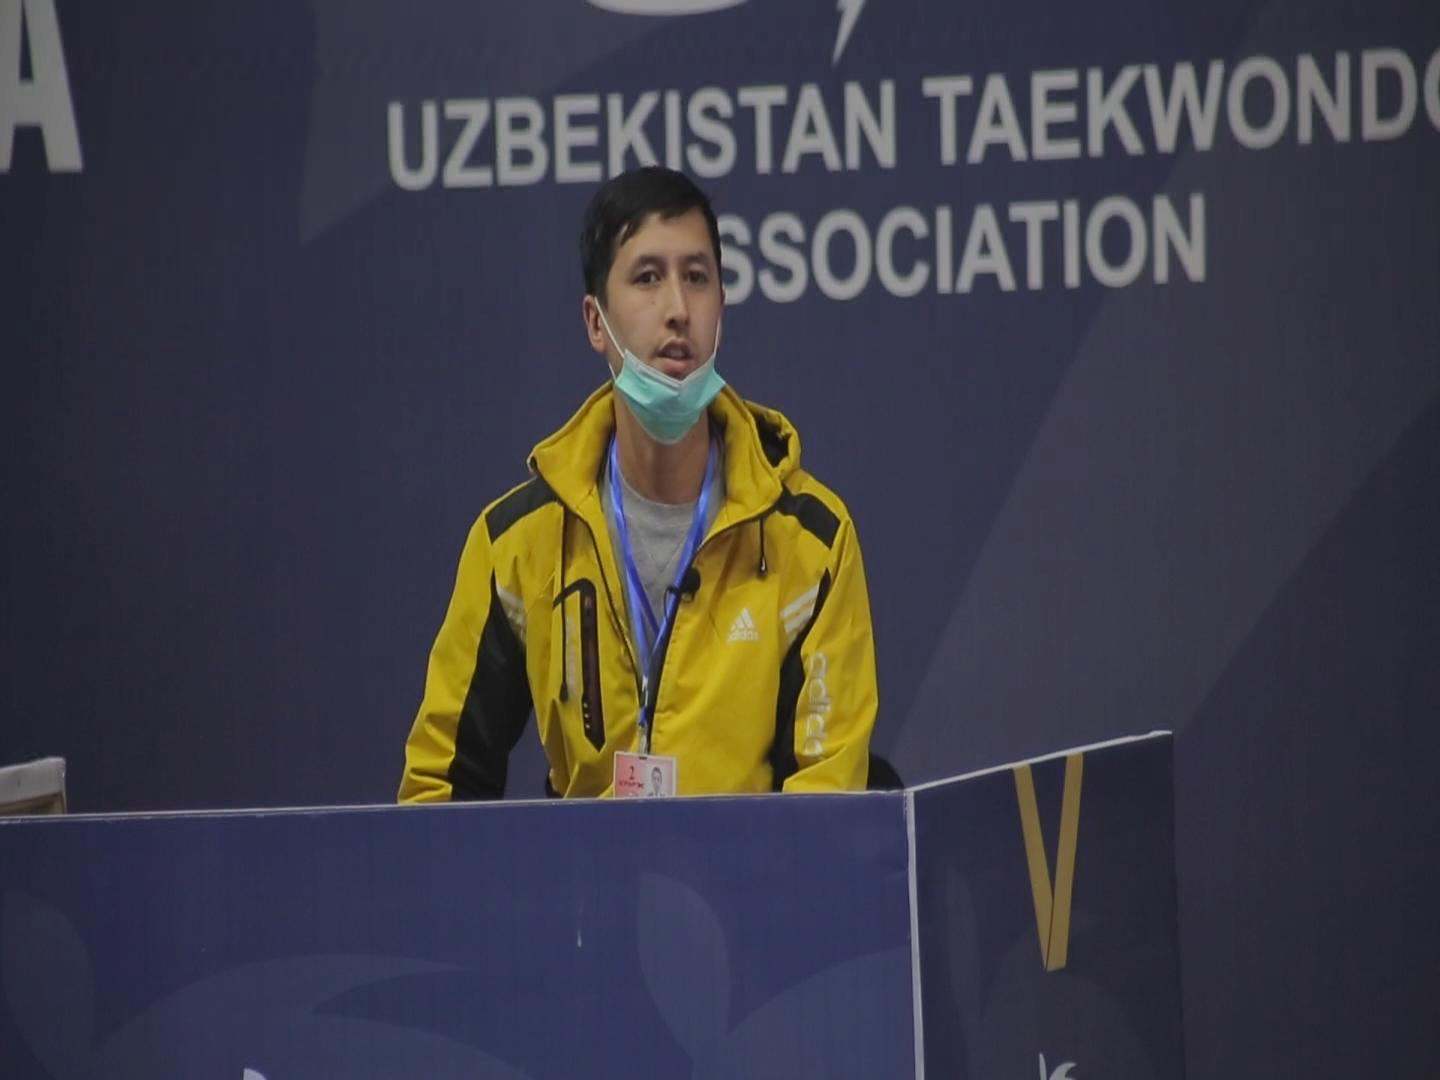 UZBEKISTAN / KICKBOXING CHAMPION CITIZENSHIP